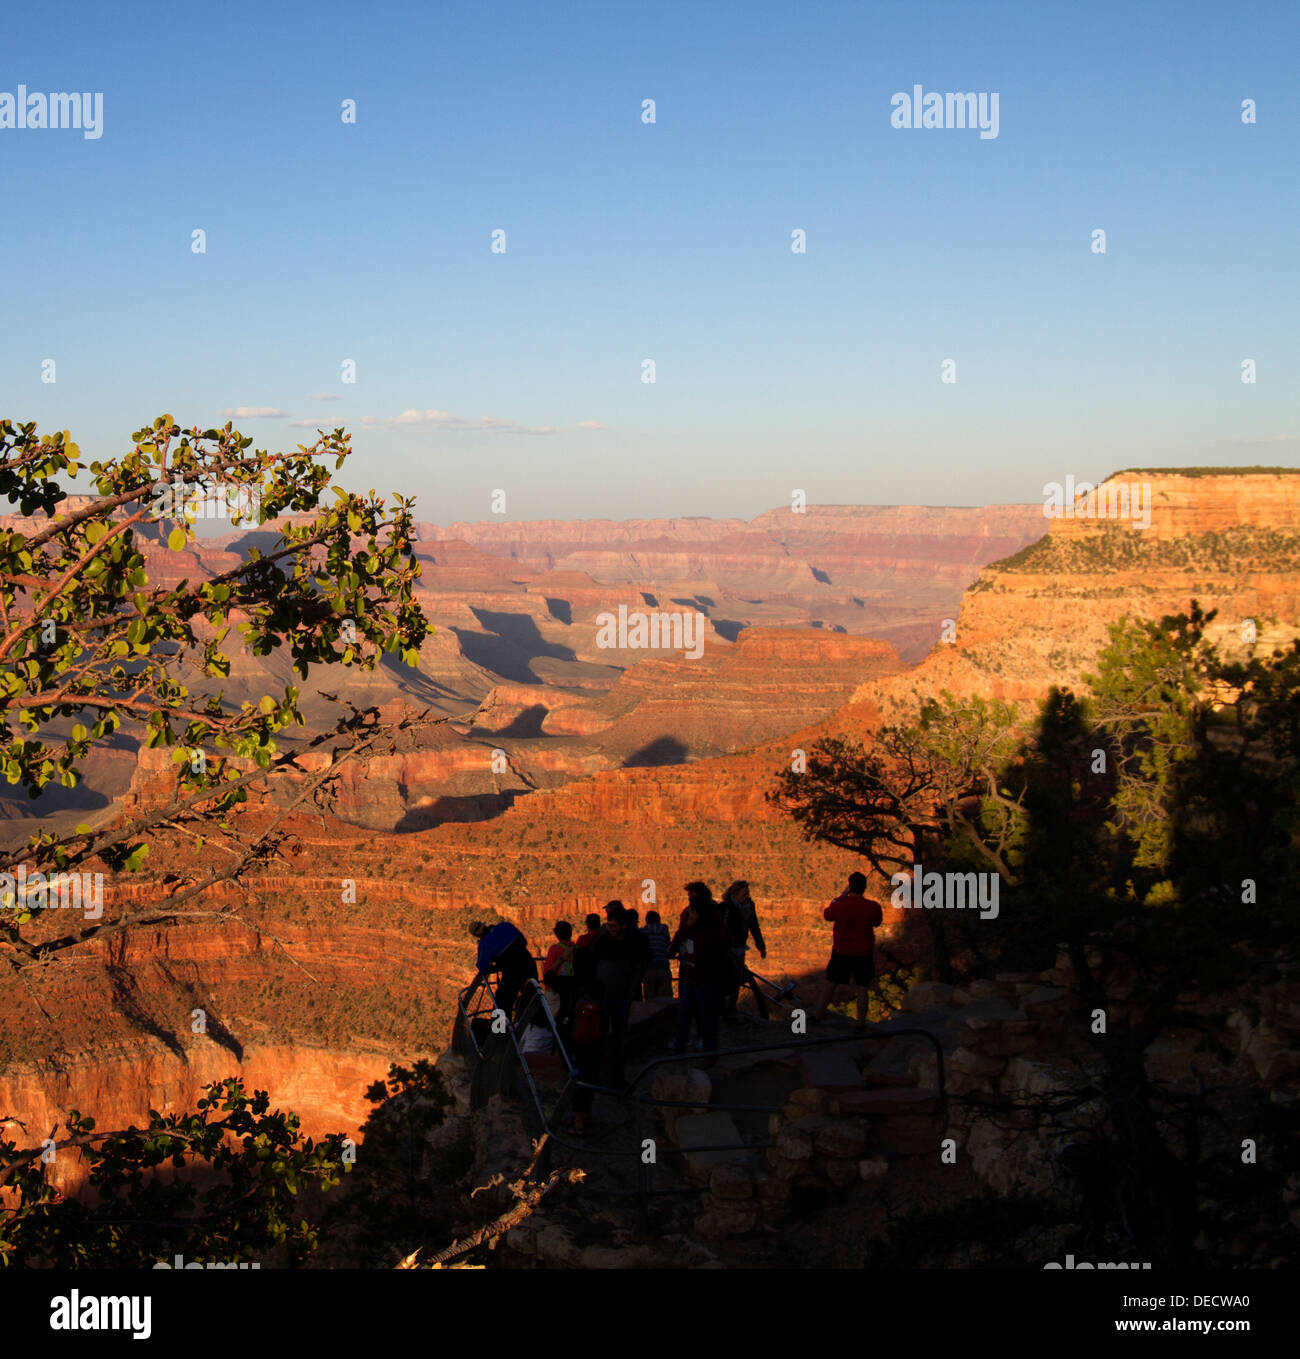 Sightseers (silhouetted) at sunset,Grand Canyon, Arizona - Stock Image